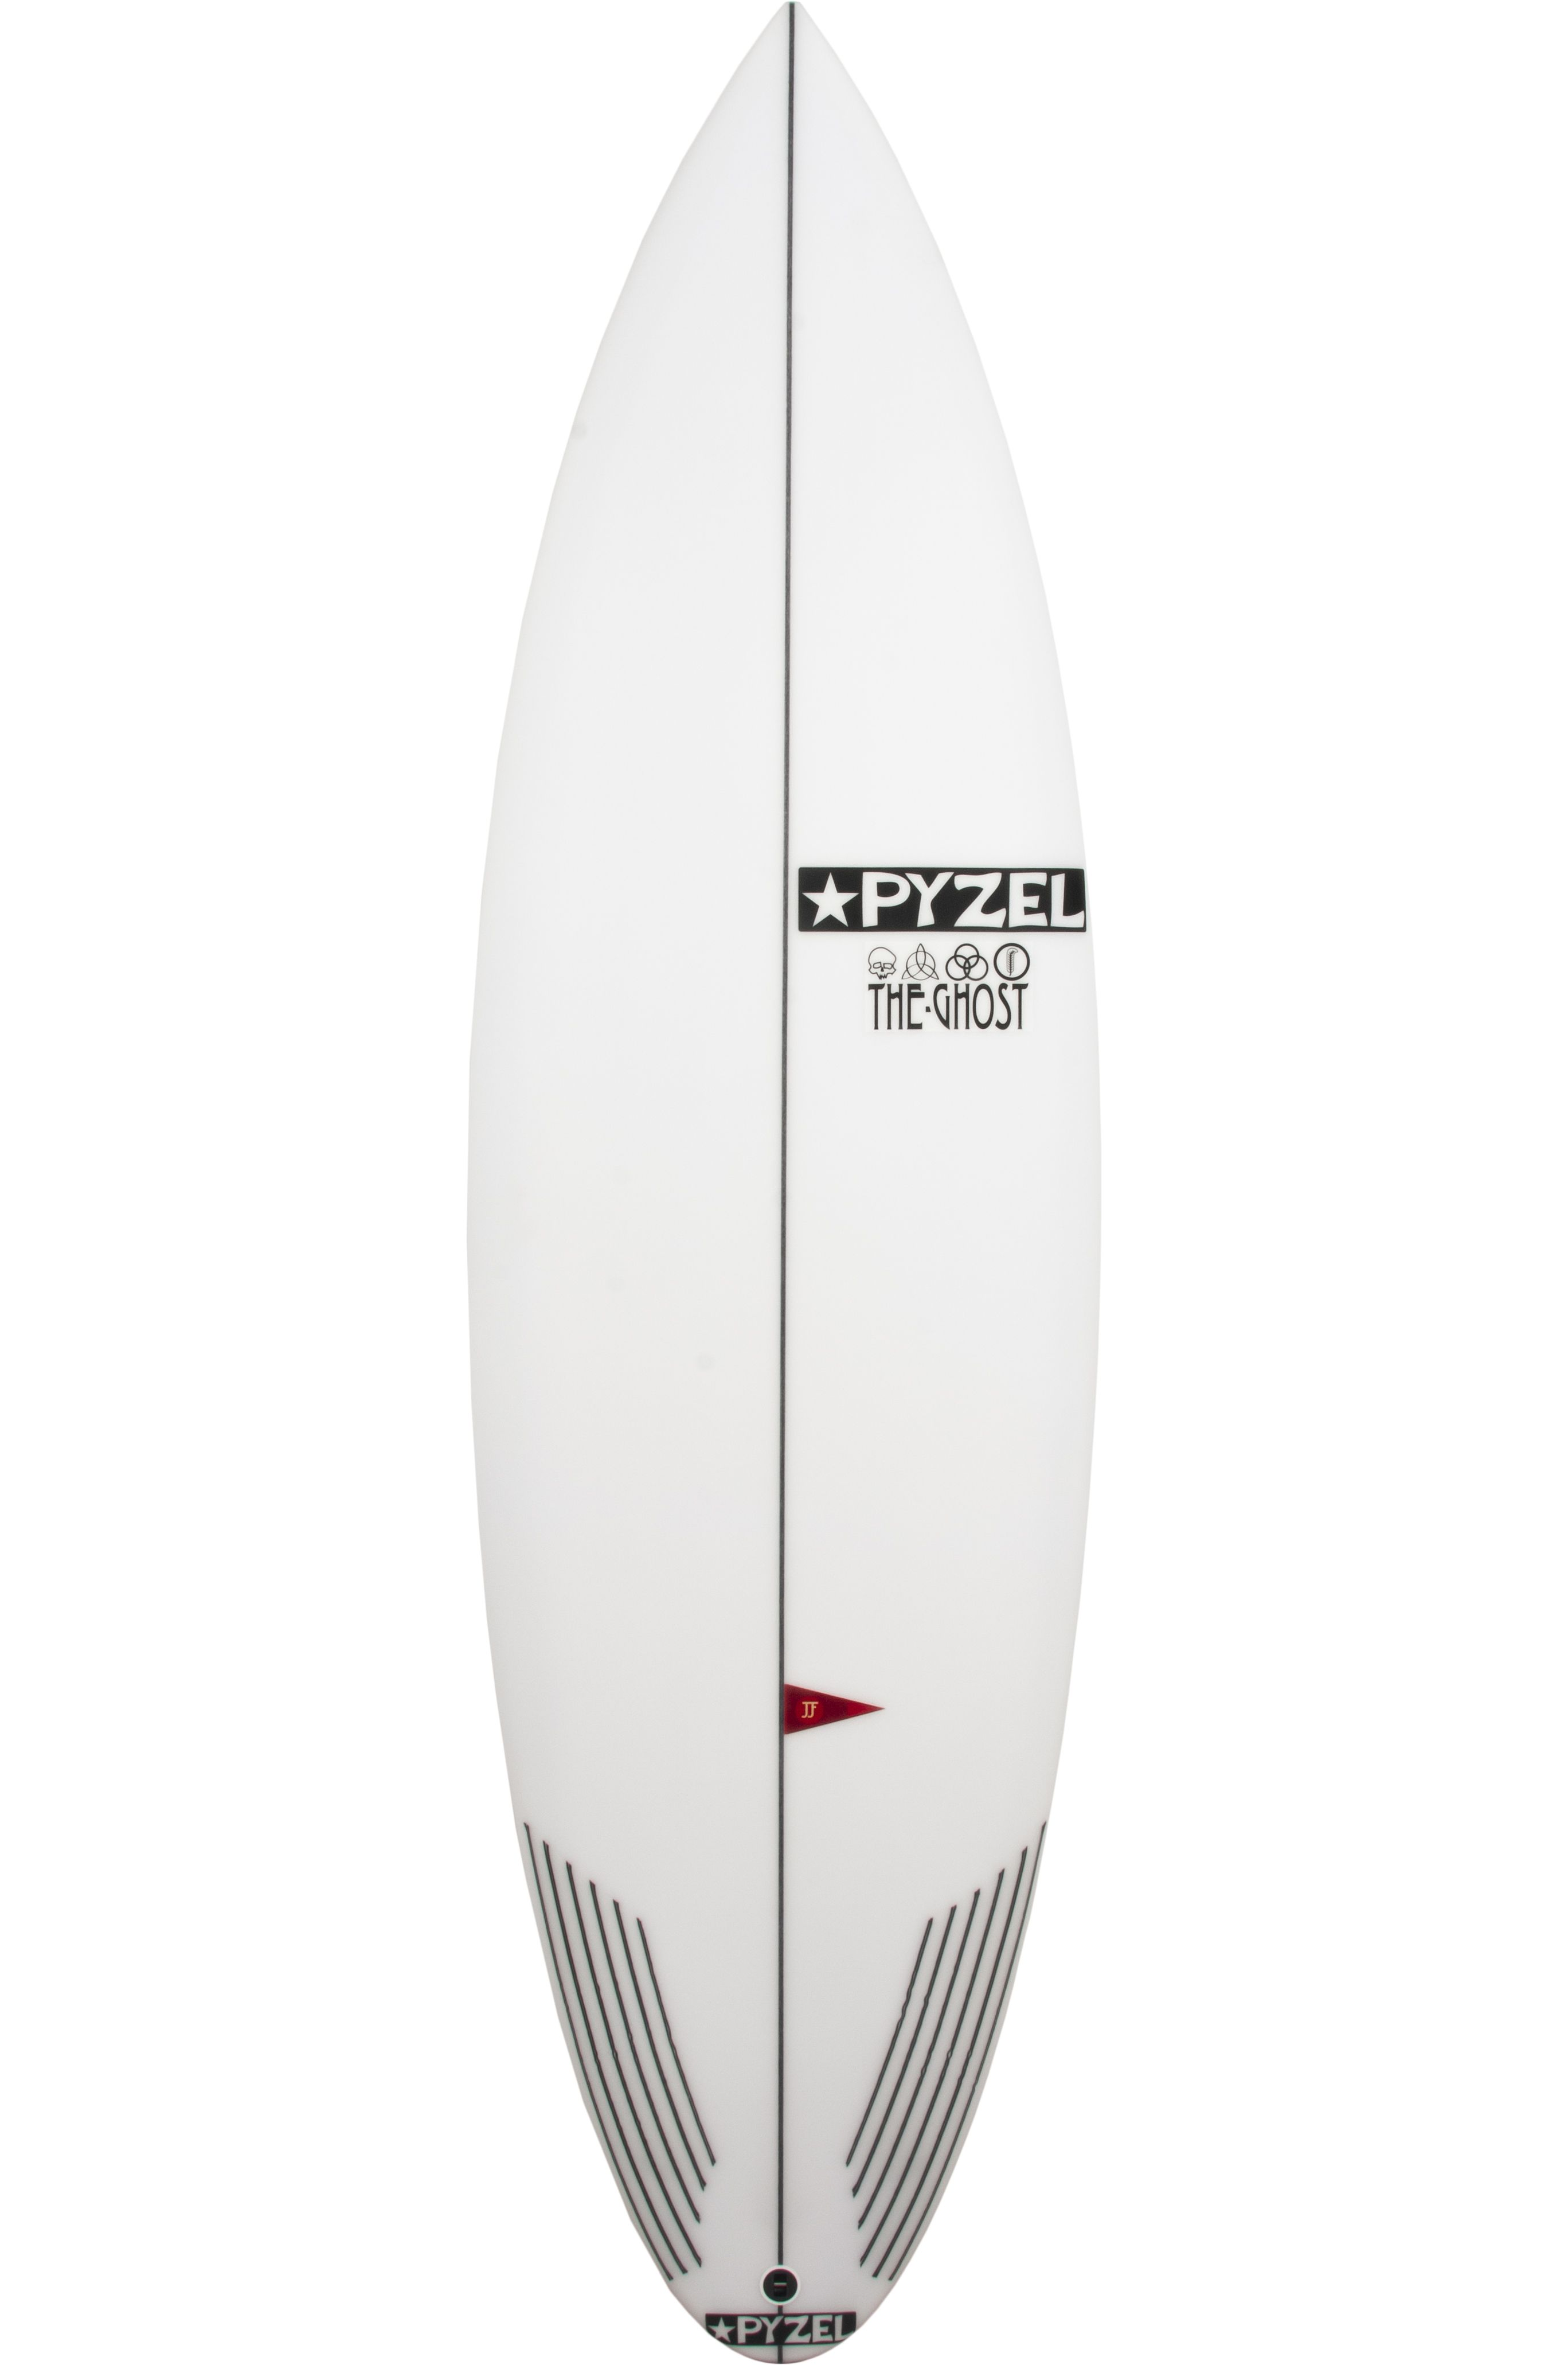 Prancha Surf Pyzel 5'9 GHOST Round Pin Tail - White FCS II Multisystem 5ft9